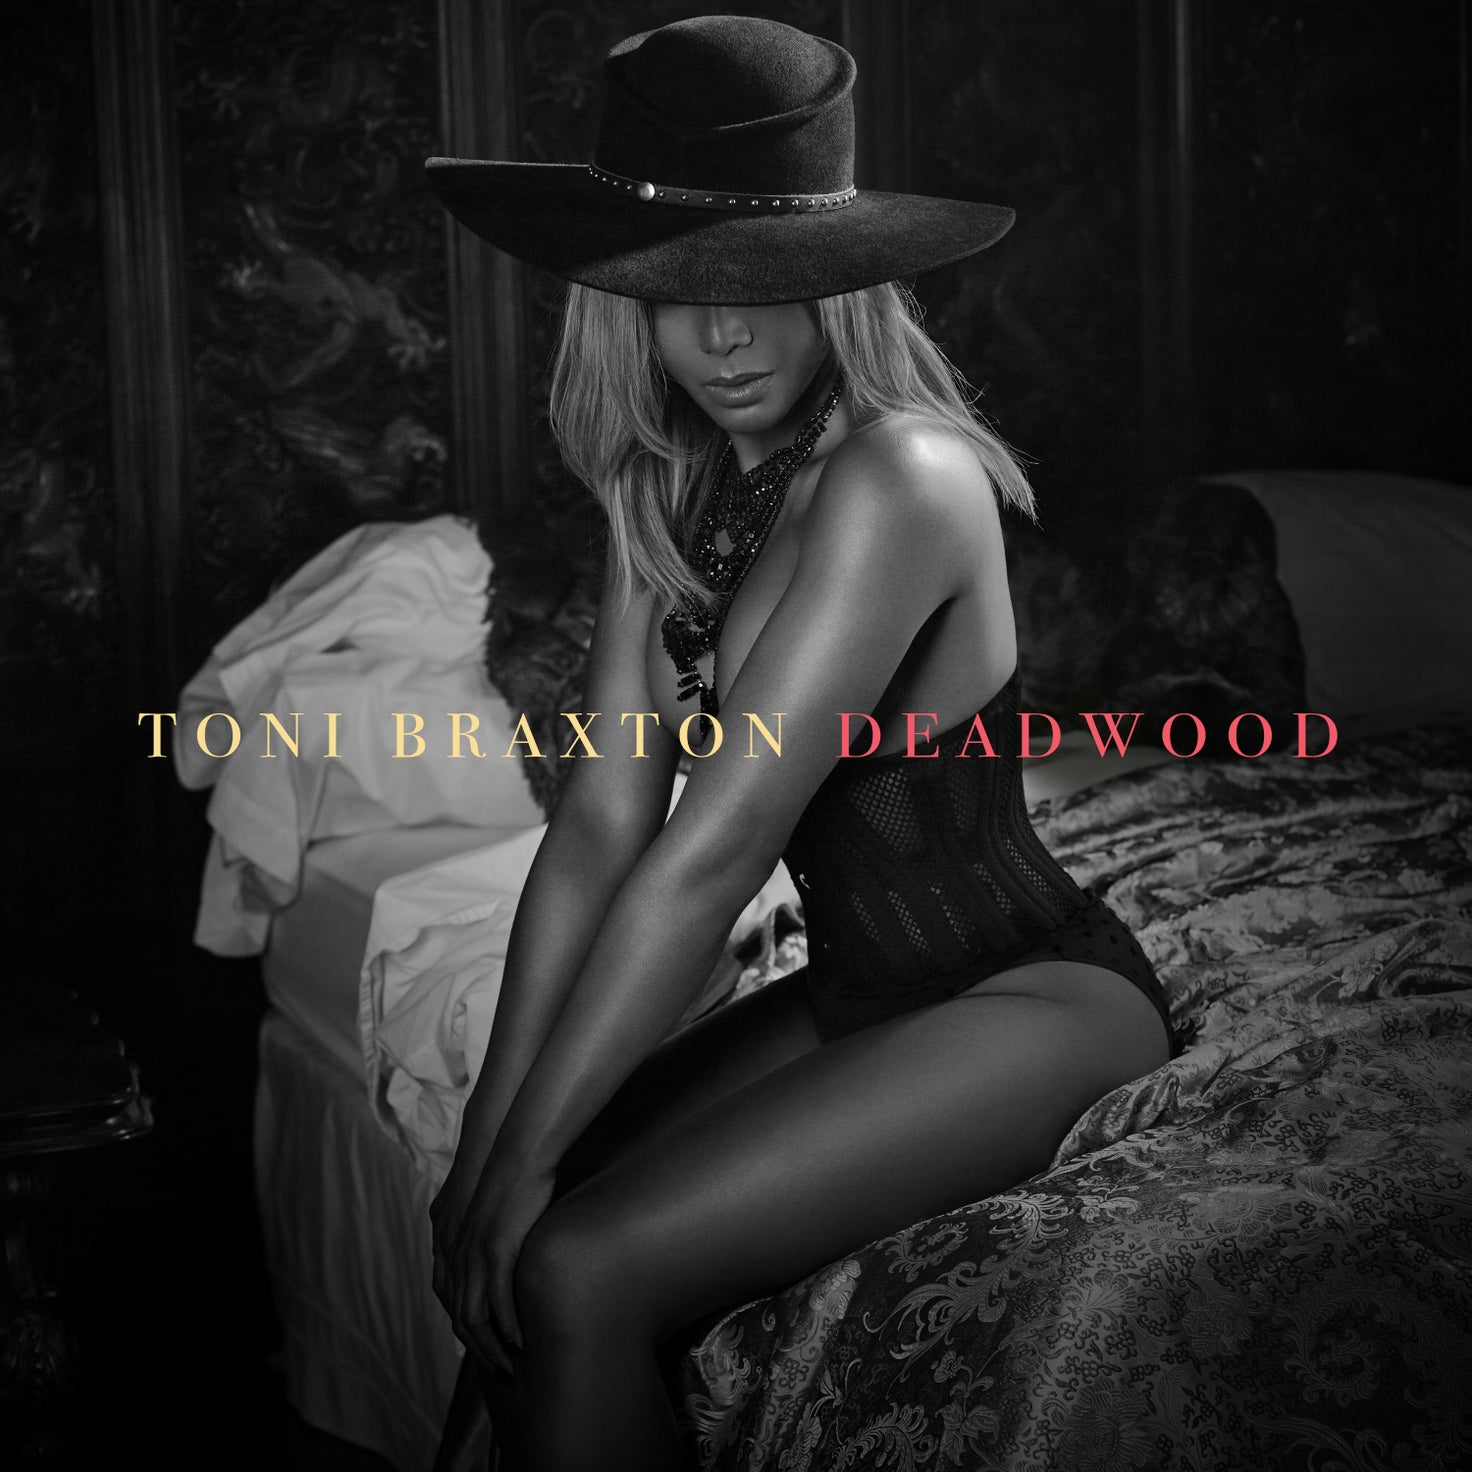 EXCLUSIVE: Toni Braxton's New Music Is 'About Me Feeling Sexy and Independent'